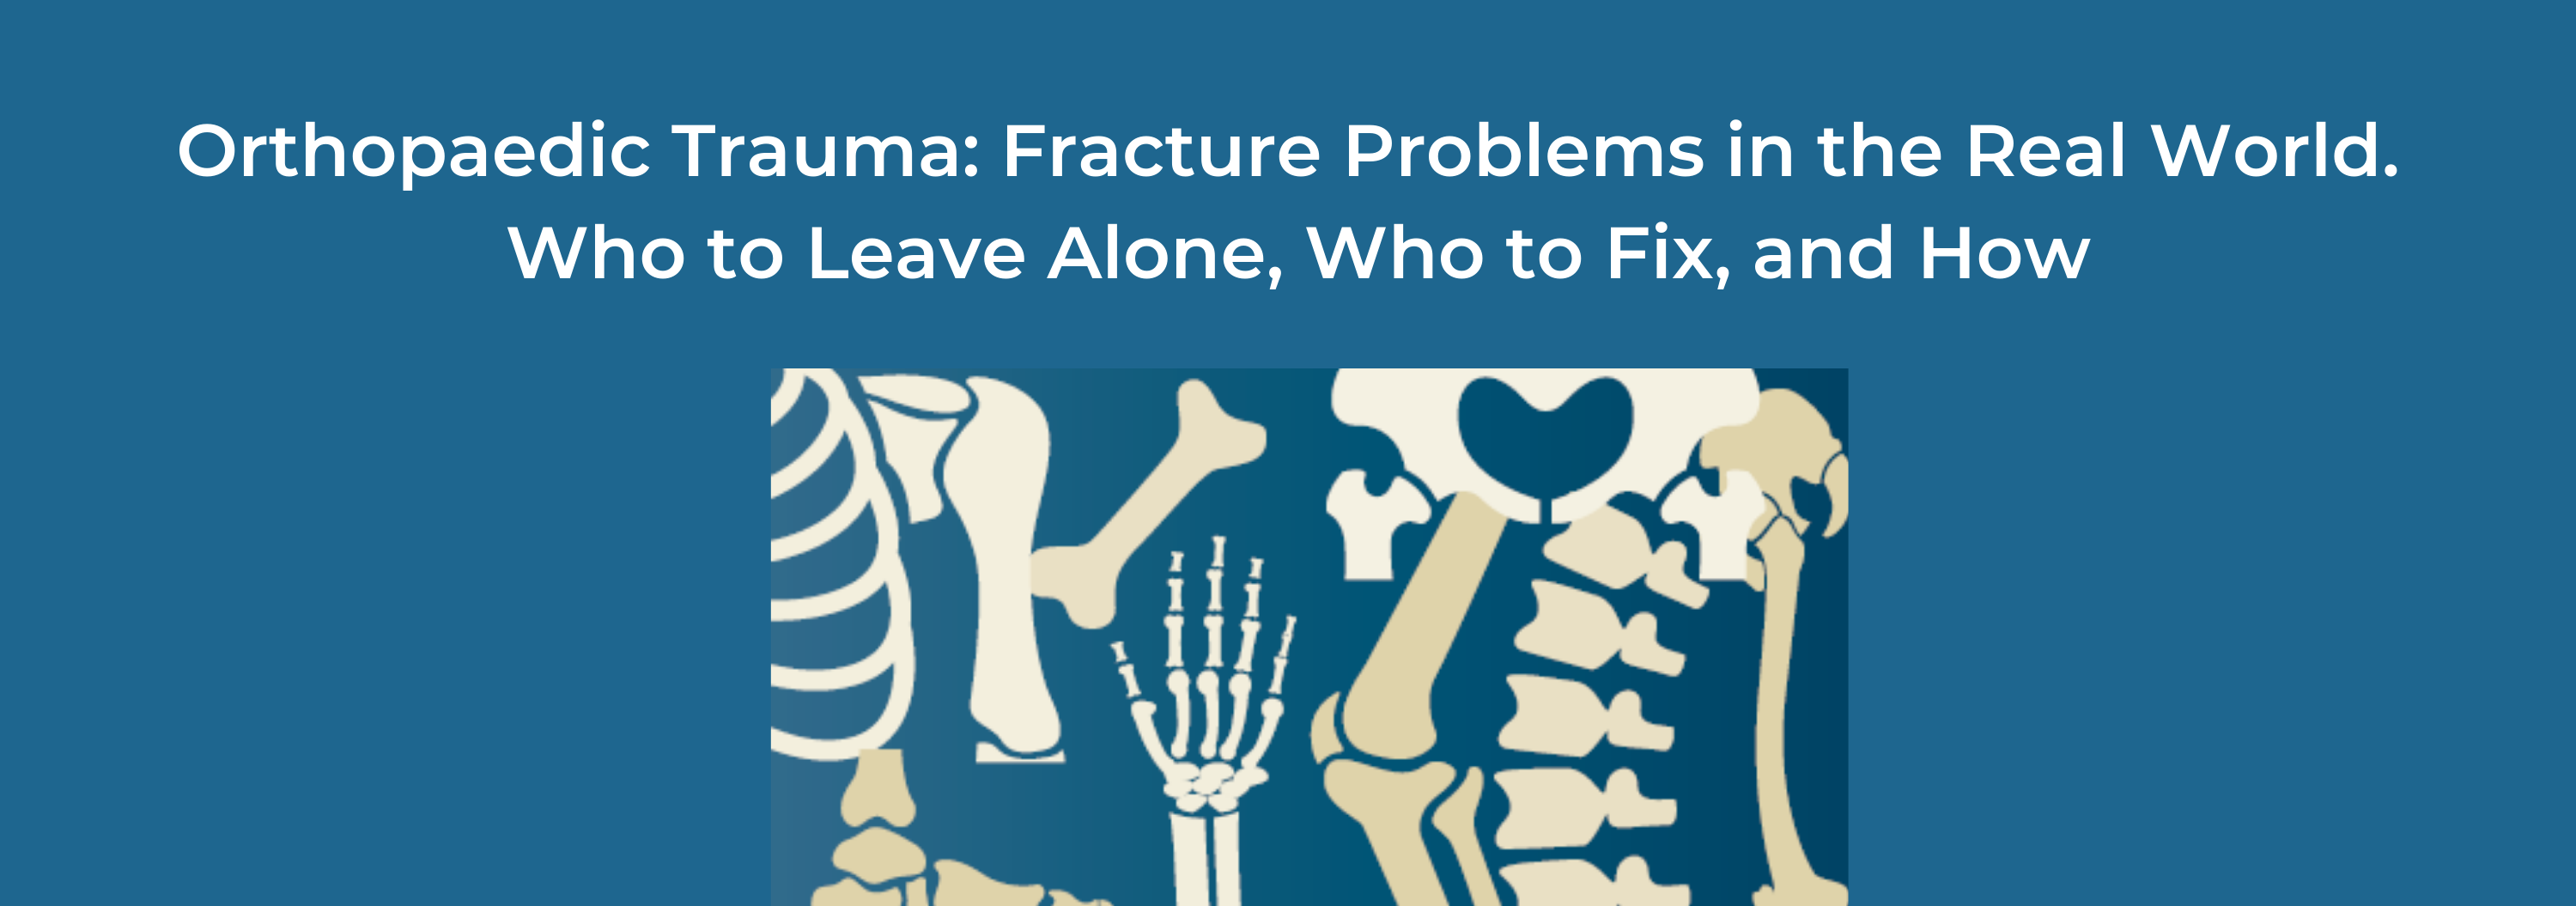 2019 Orthopaedic Trauma: Fracture Problems in the Real World